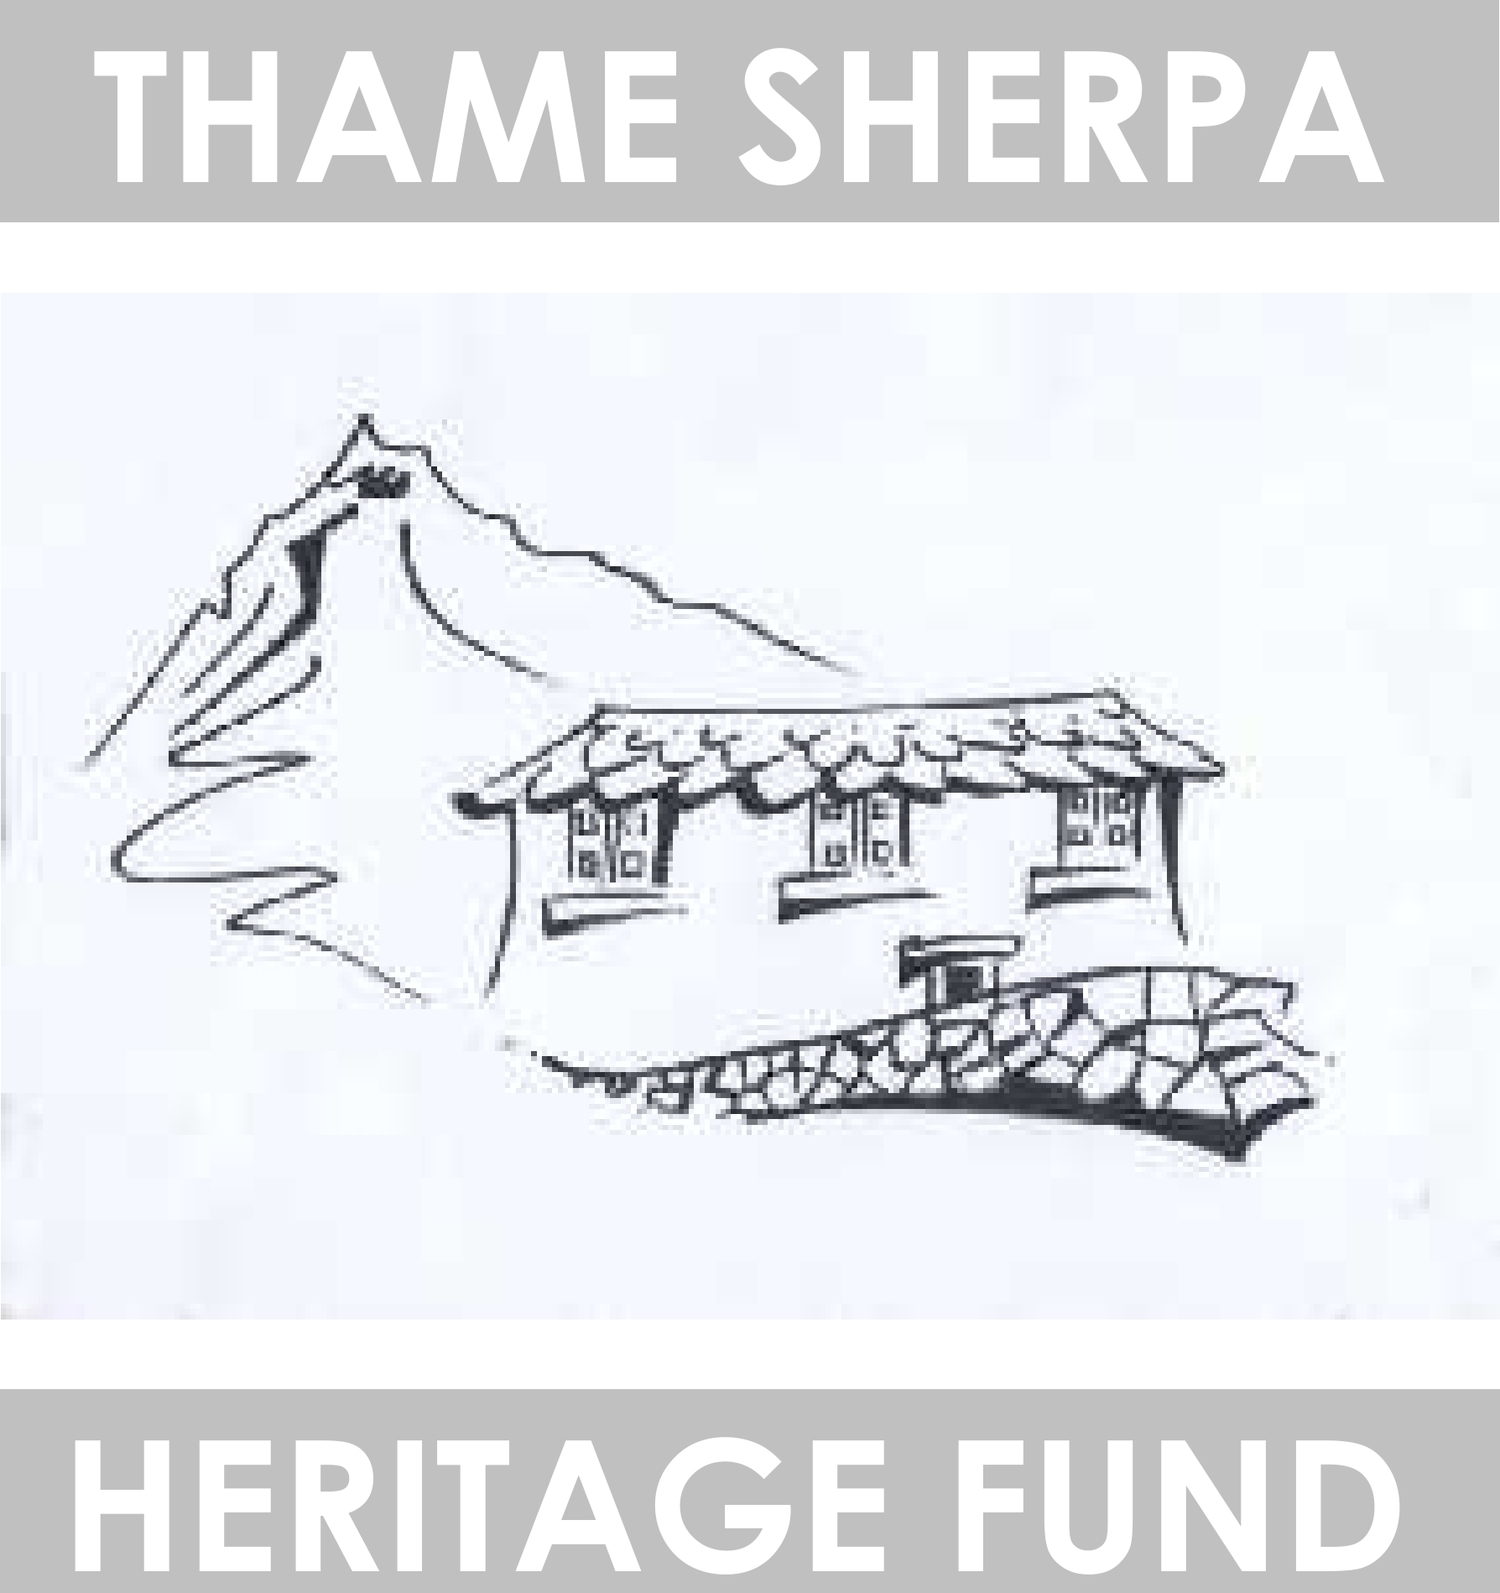 Thame Sherpa Heritage Fund